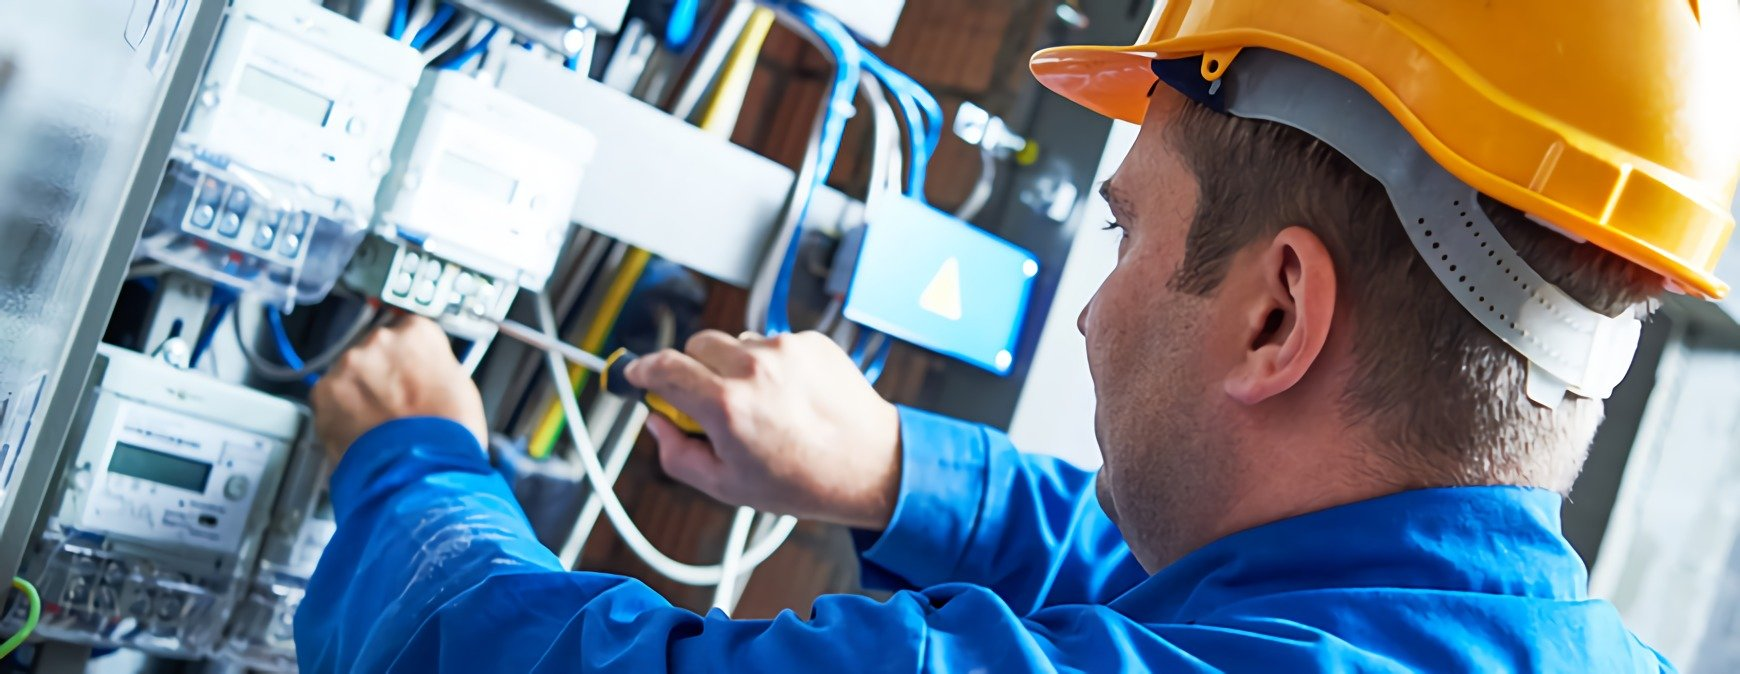 how to become an electrician entreprenuer